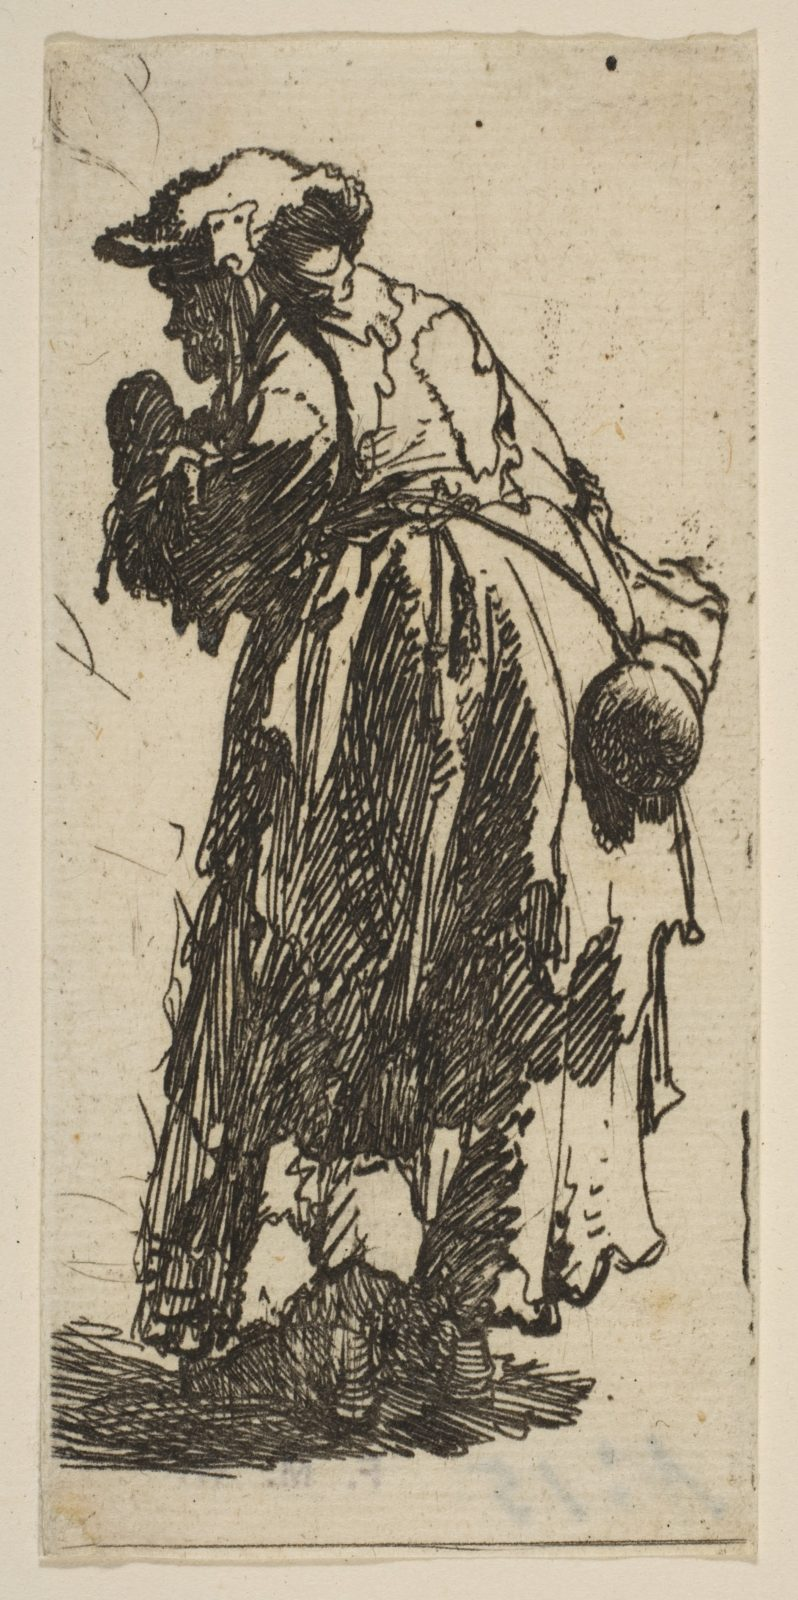 comparing beggar woman by william king and In a drear scottish prison, convicts await transport to the colonies and a hard, brutal existence as indentured servants the prisons held idle vagabonds and beggars, poverty being itself sufficient grounds for imprisonment and transport.